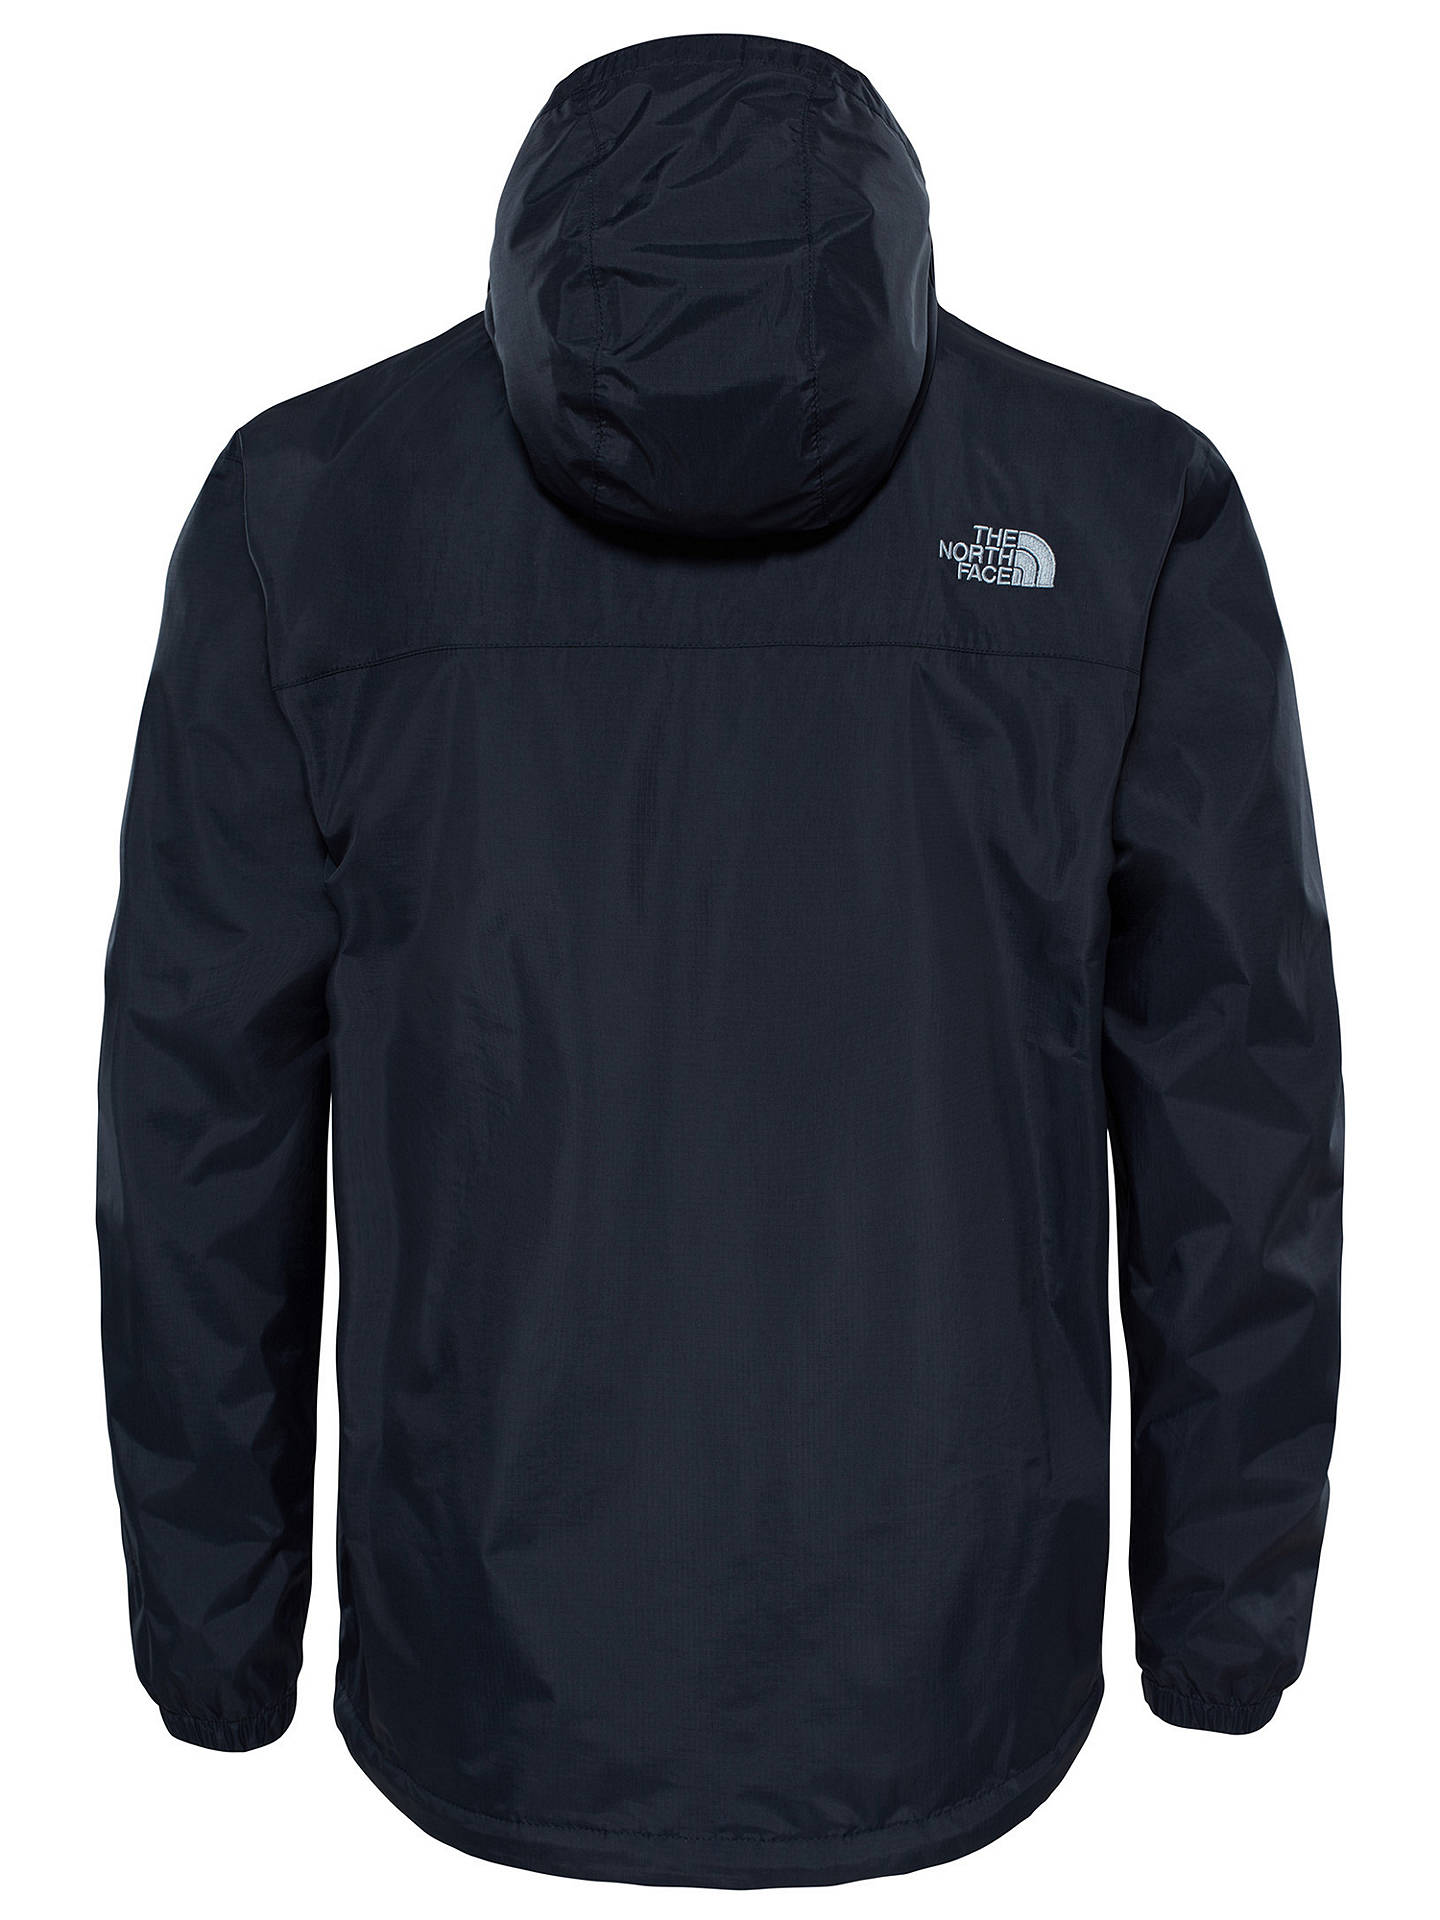 969f1d1aa The North Face Resolve 2 Waterproof Men's Jacket, Black